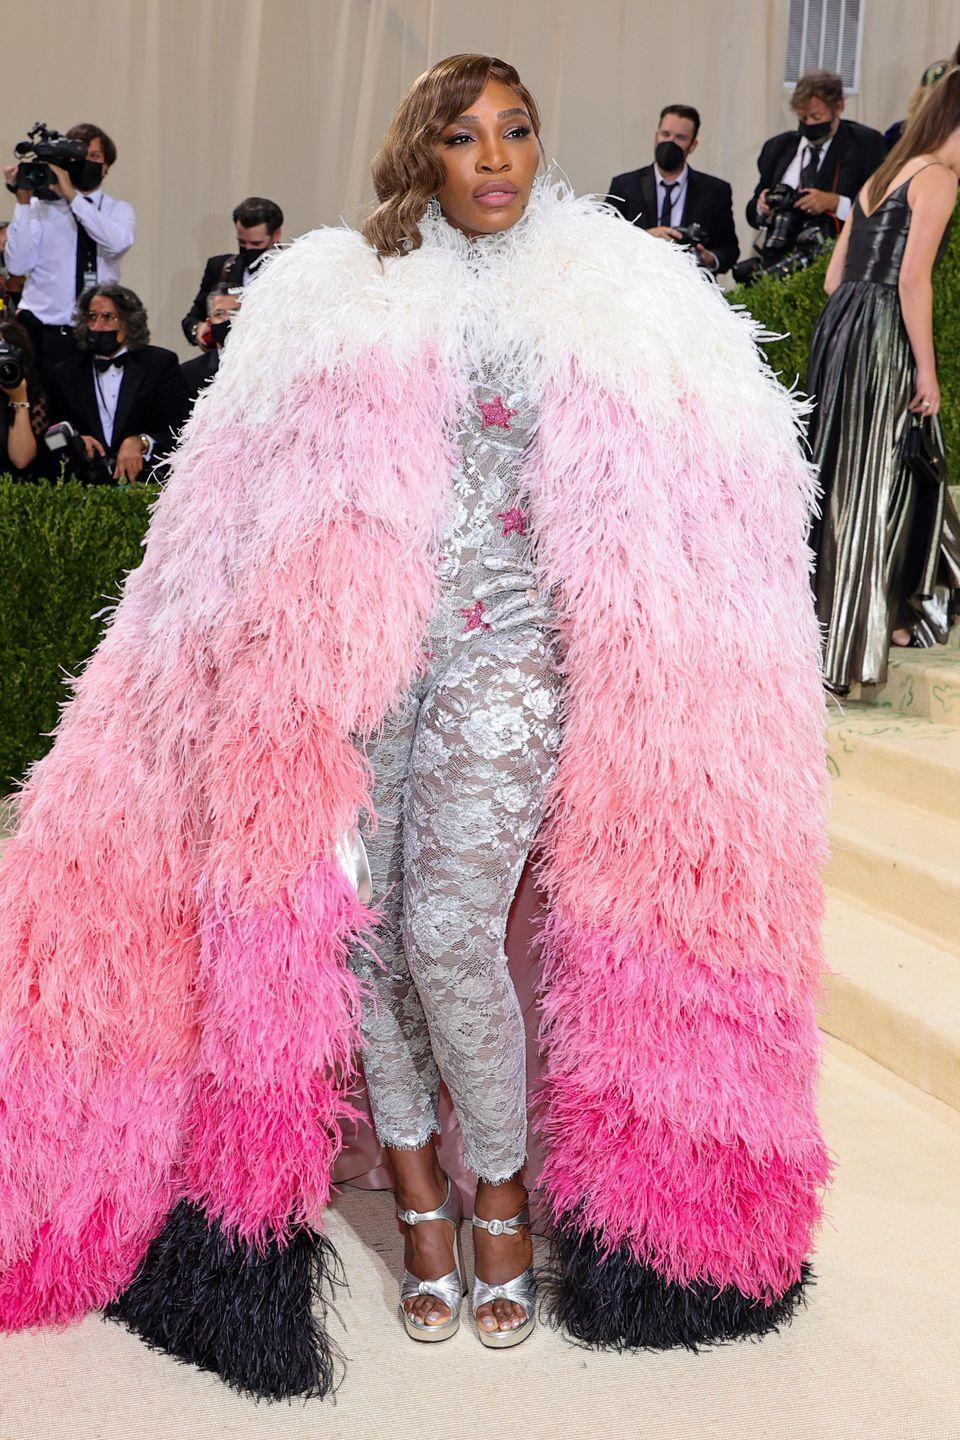 <p>The tennis legend wowed in a look that was part superhero, part drag queen, and spectacular all over. We just can't look at this without smiling. </p>